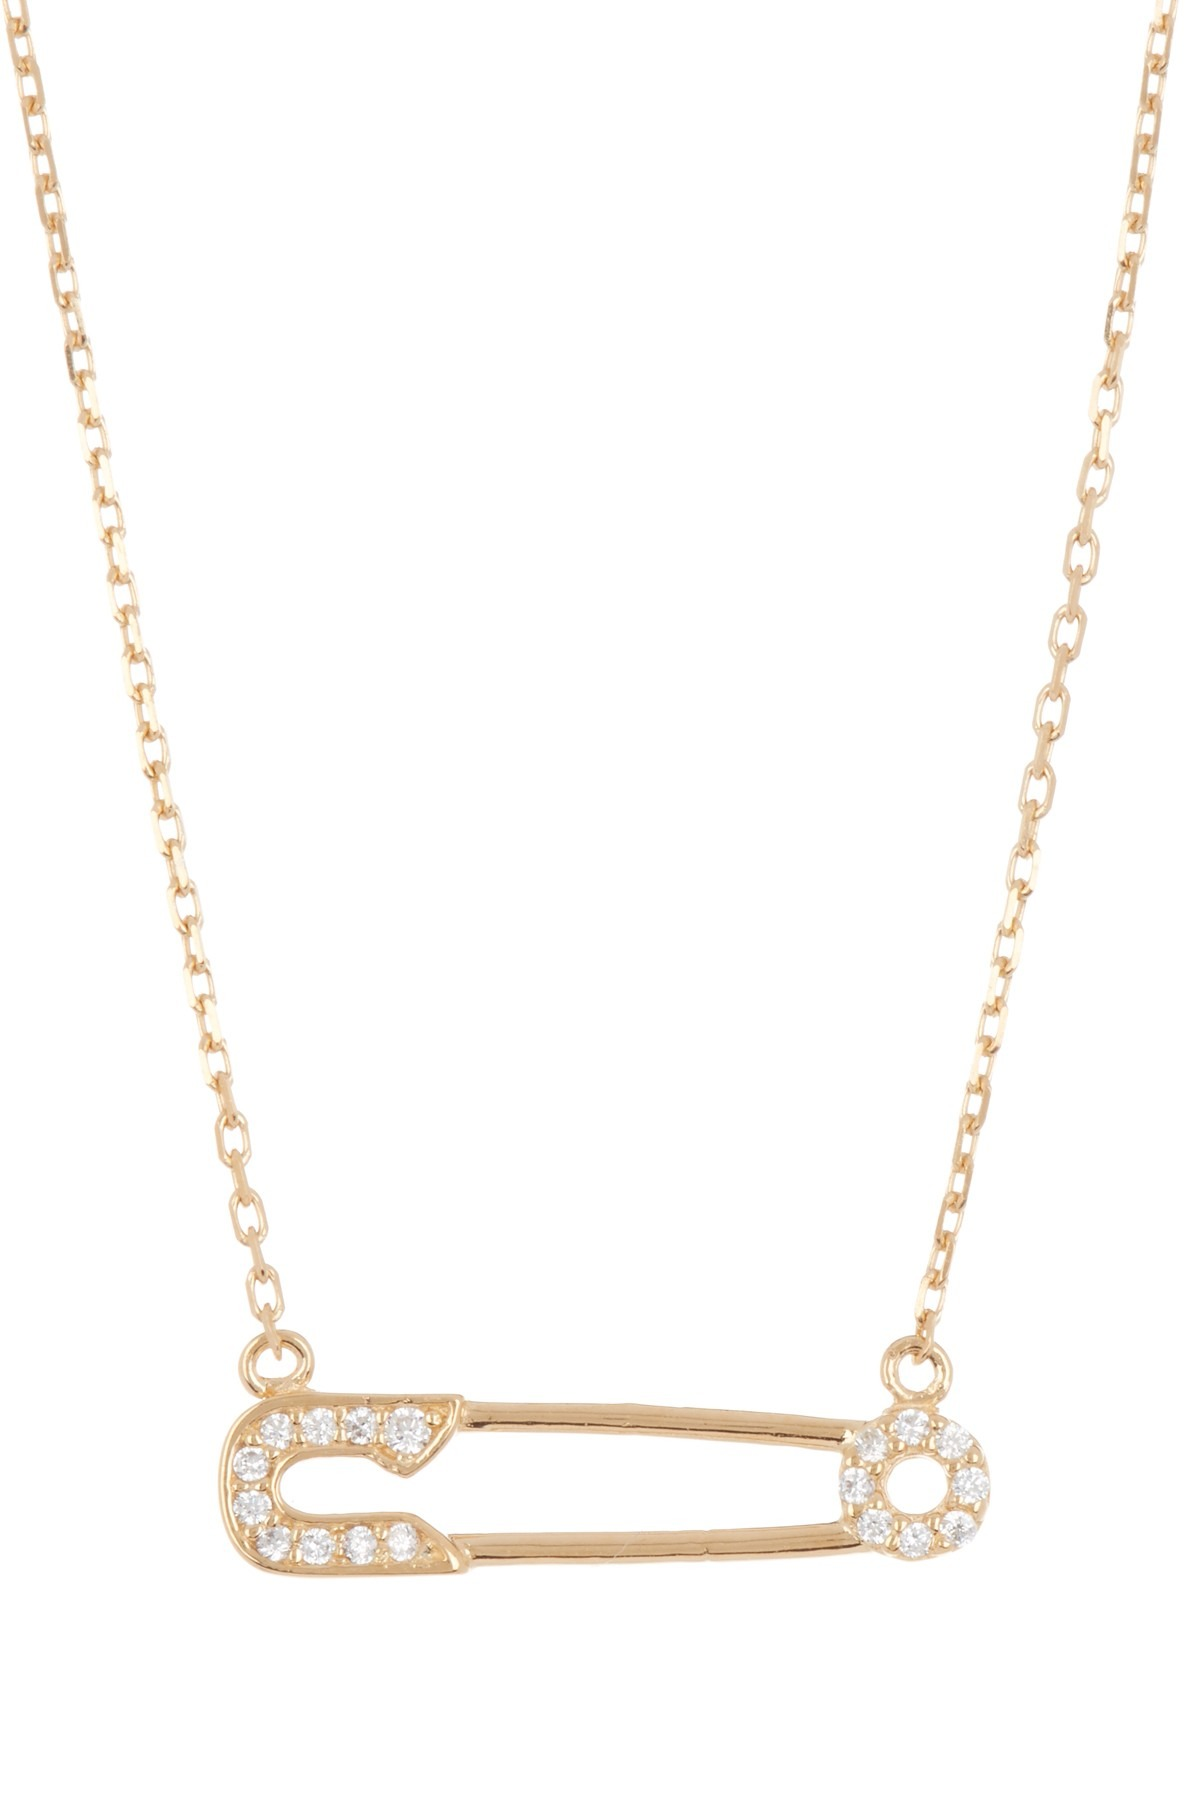 ADORNIA 14K Yellow Gold Plated Sterling Silver Pave CZ Safety Pin Pendant Necklace